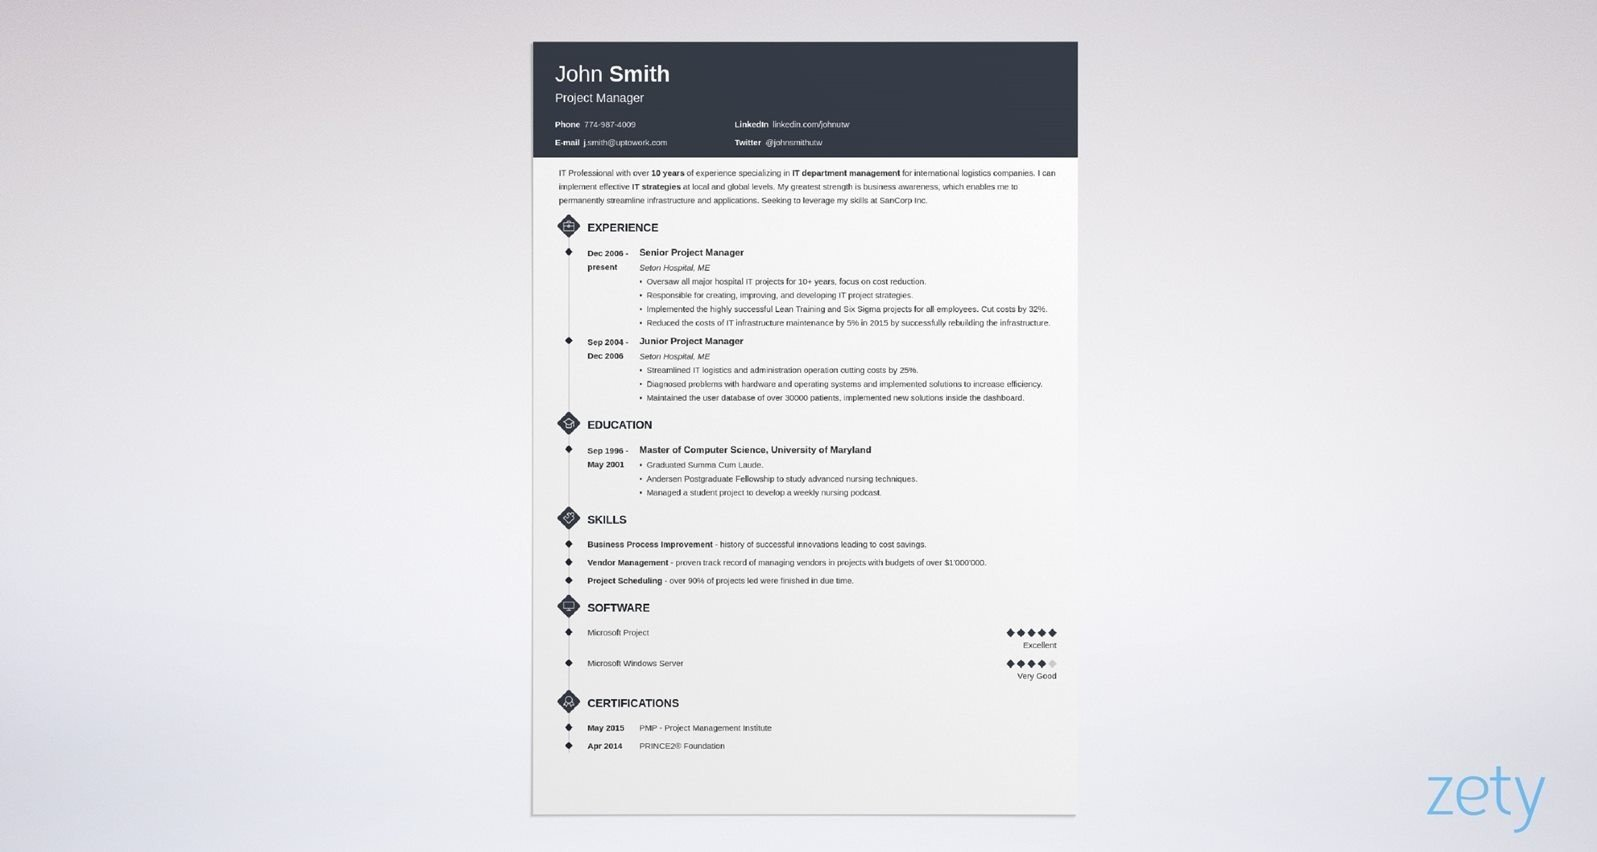 best resume templates for top picks to good looking format words with letters hotel Resume Good Looking Resume Format